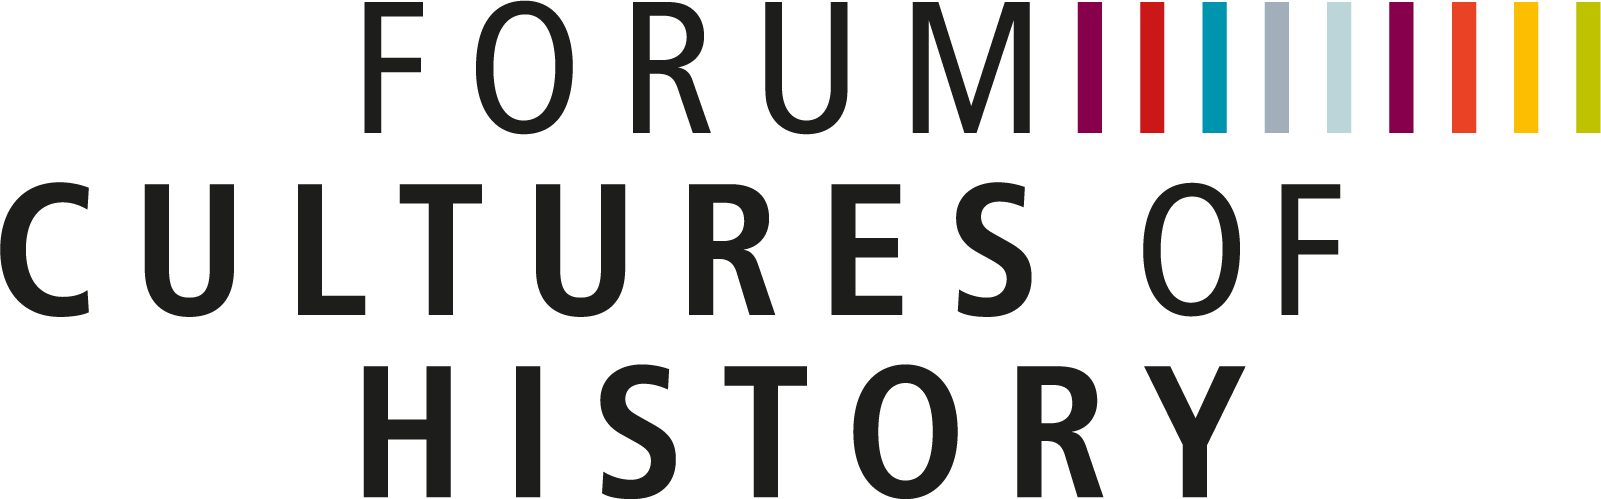 Forum of History Cultures